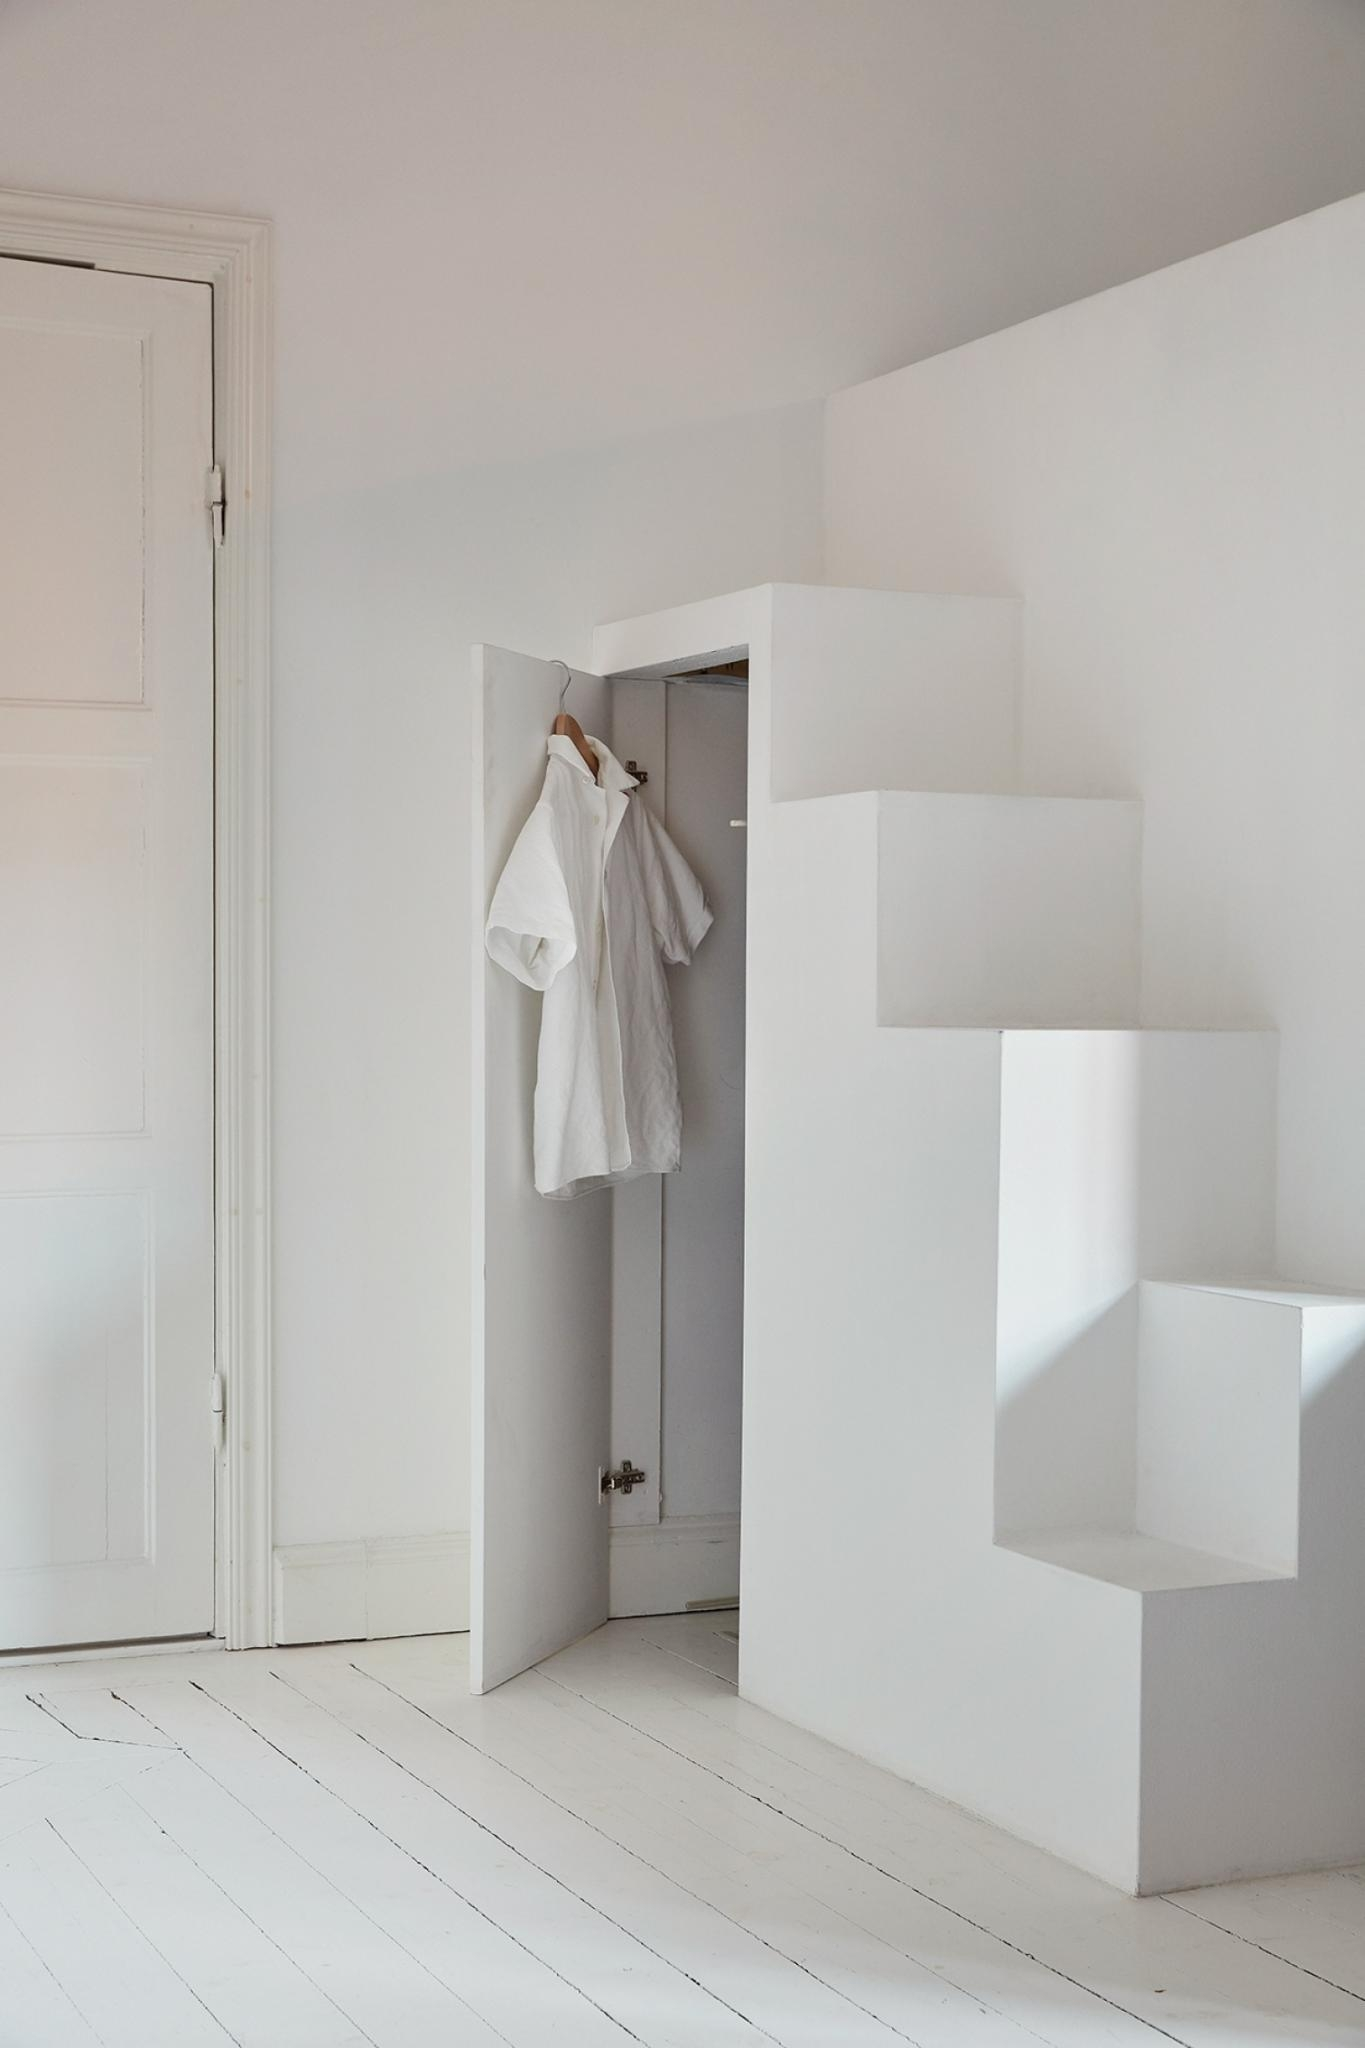 8 Compact Stairs For Cool Compact Spaces Italianbark | Clever Stairs For Small Spaces | Beautiful | Small Home | Compact | Decorative | Small Apartment